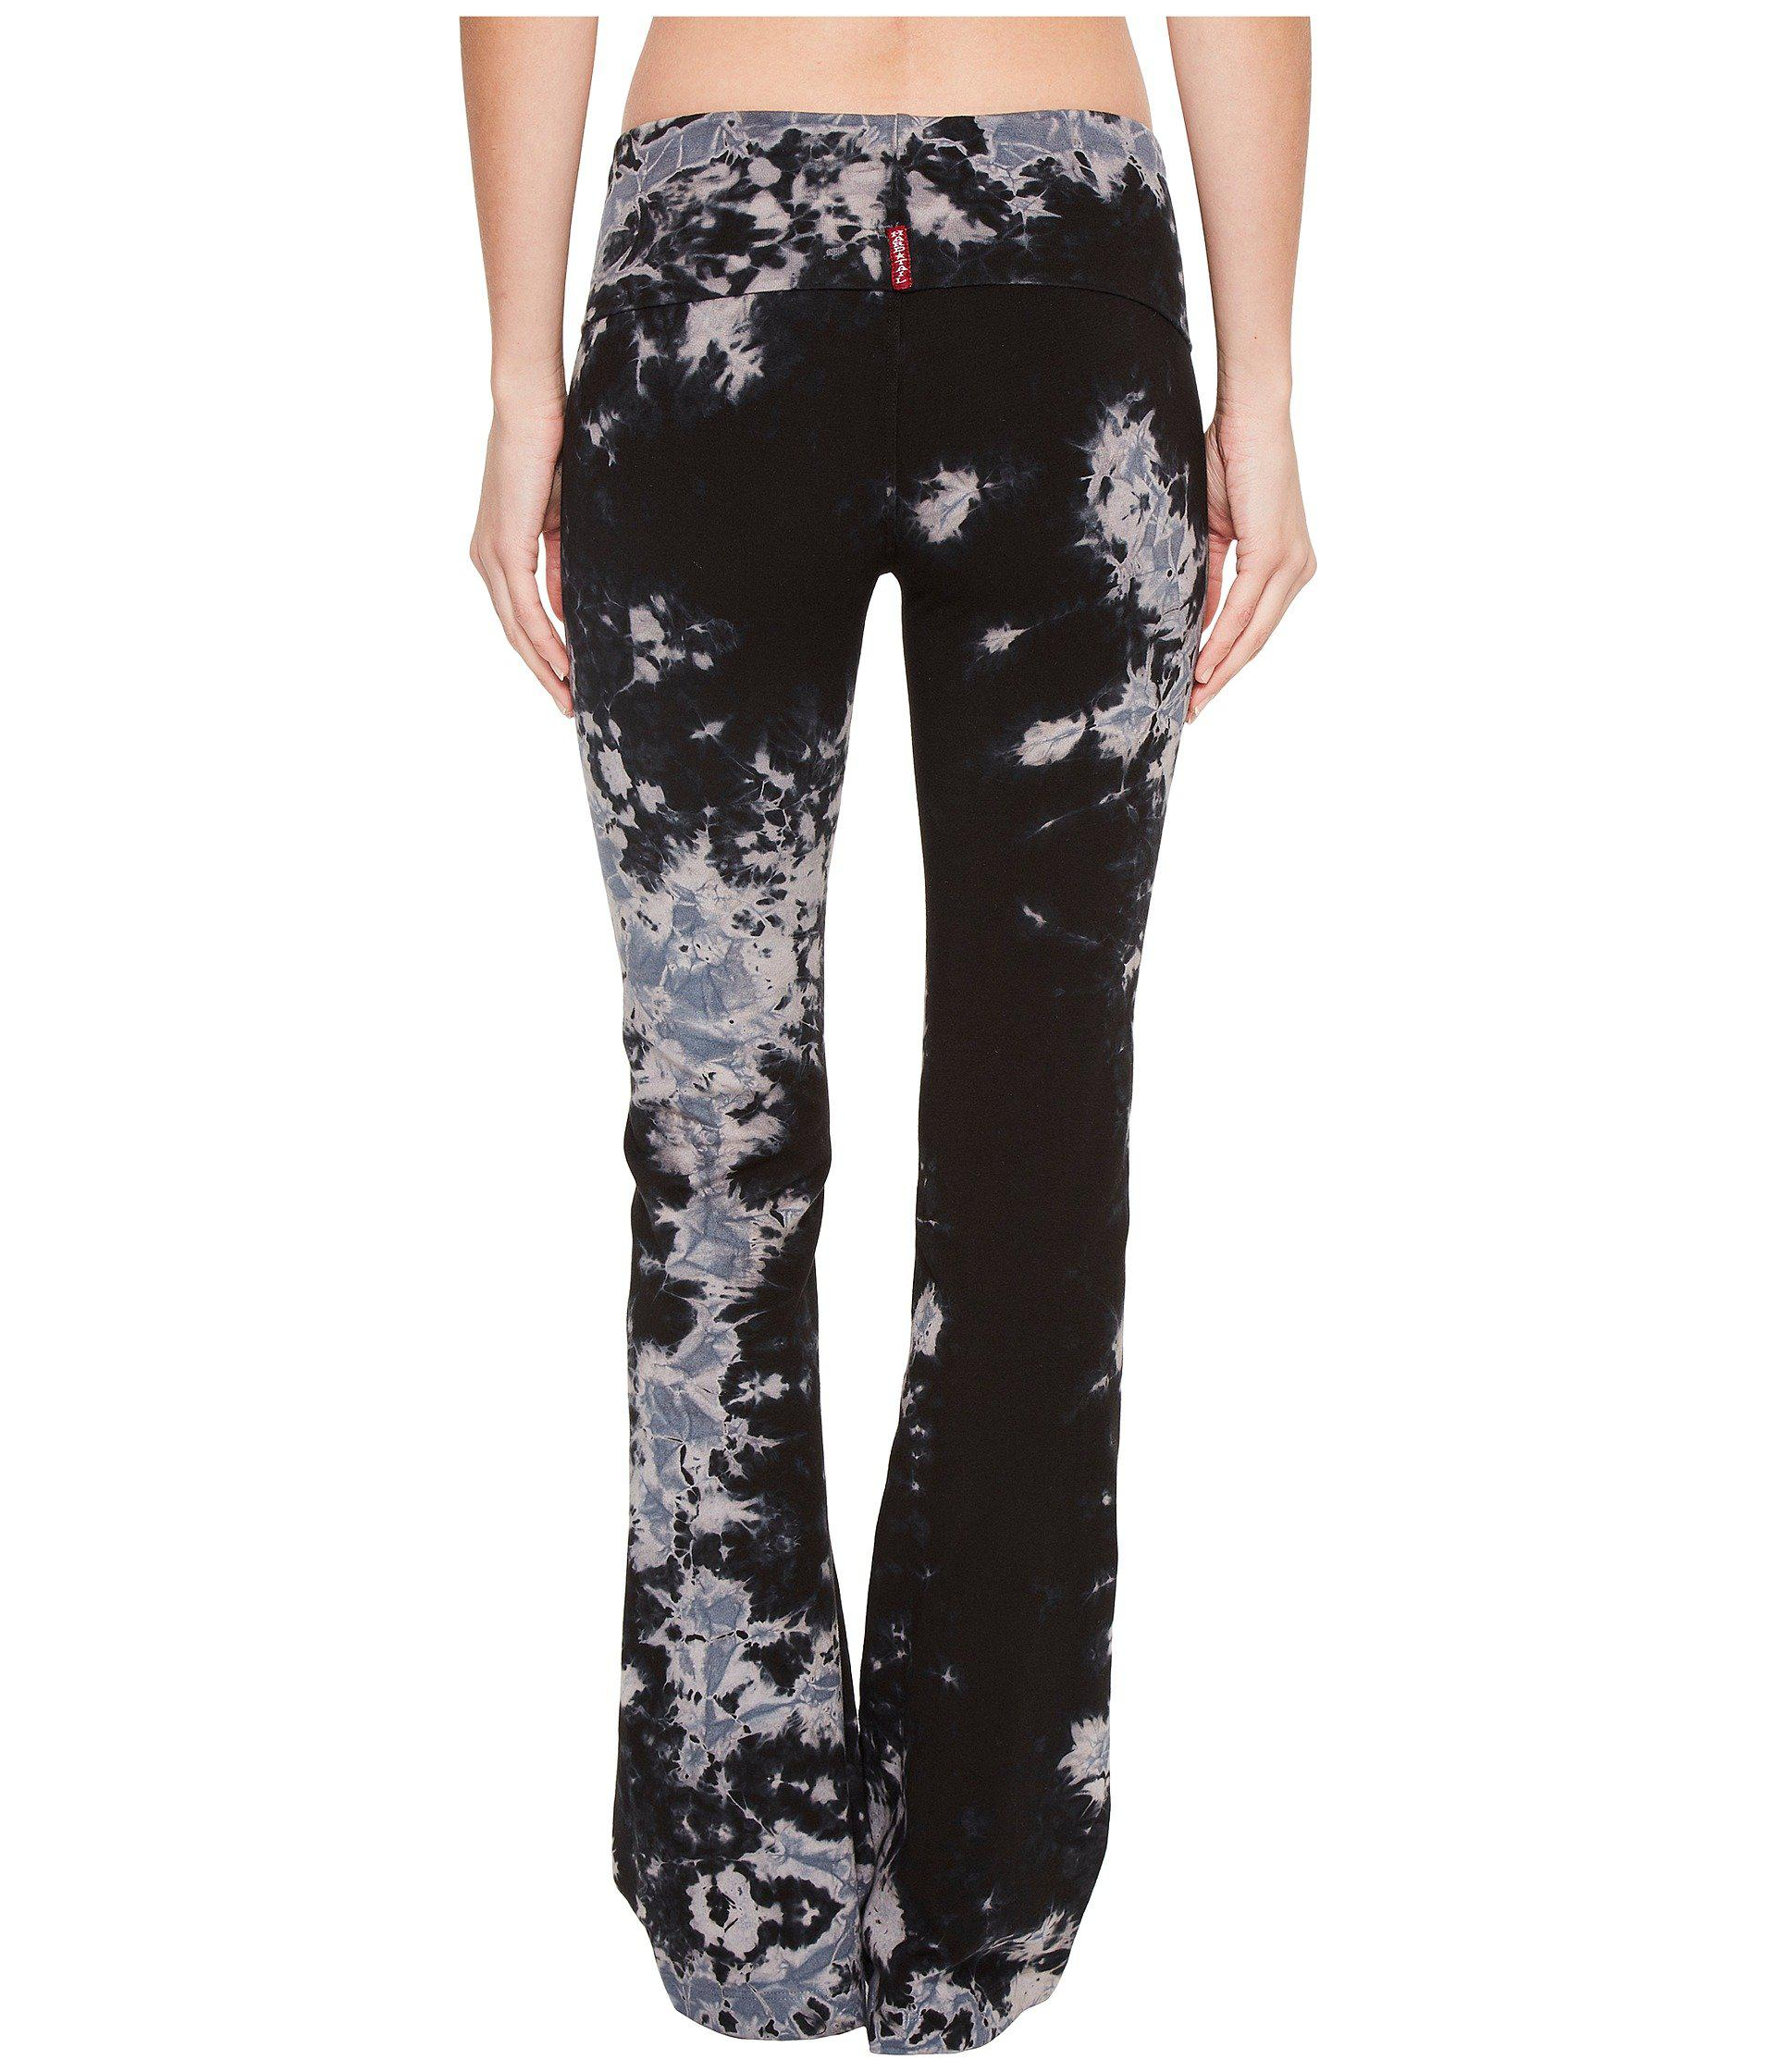 1be7ad5e962d1 Hard Tail - Black Rolldown Bootleg Flare Pants (ombre Wash 6) Women's  Casual Pants. View fullscreen